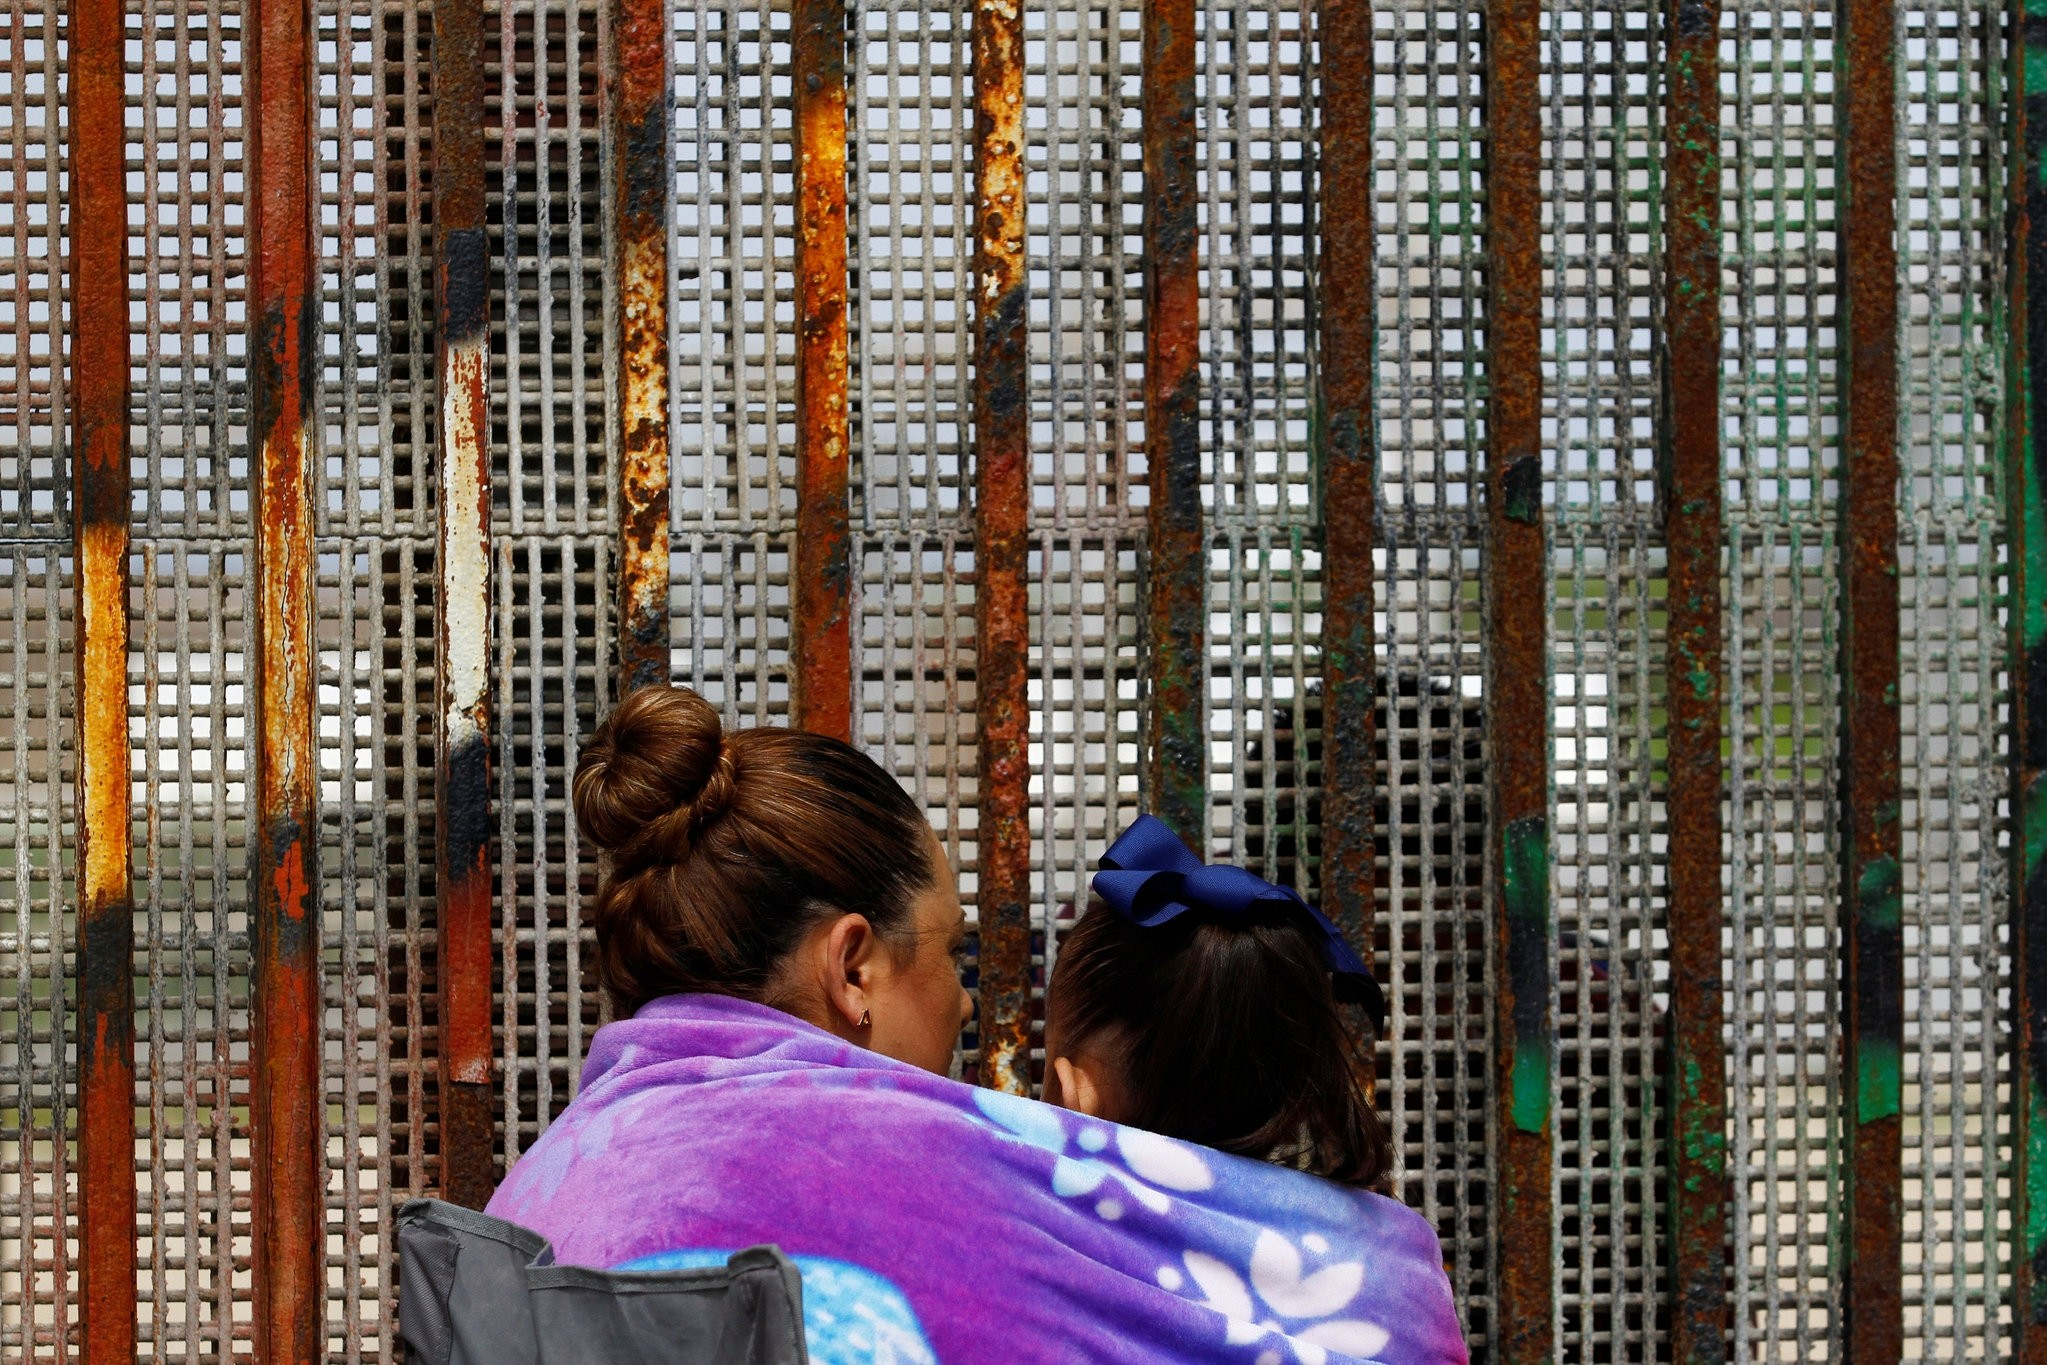 A woman carries her son while talking to her husband across the fence separating Mexico and U.S, as photographed from Tijuana, March 4, 2017. (REUTERS Photo)